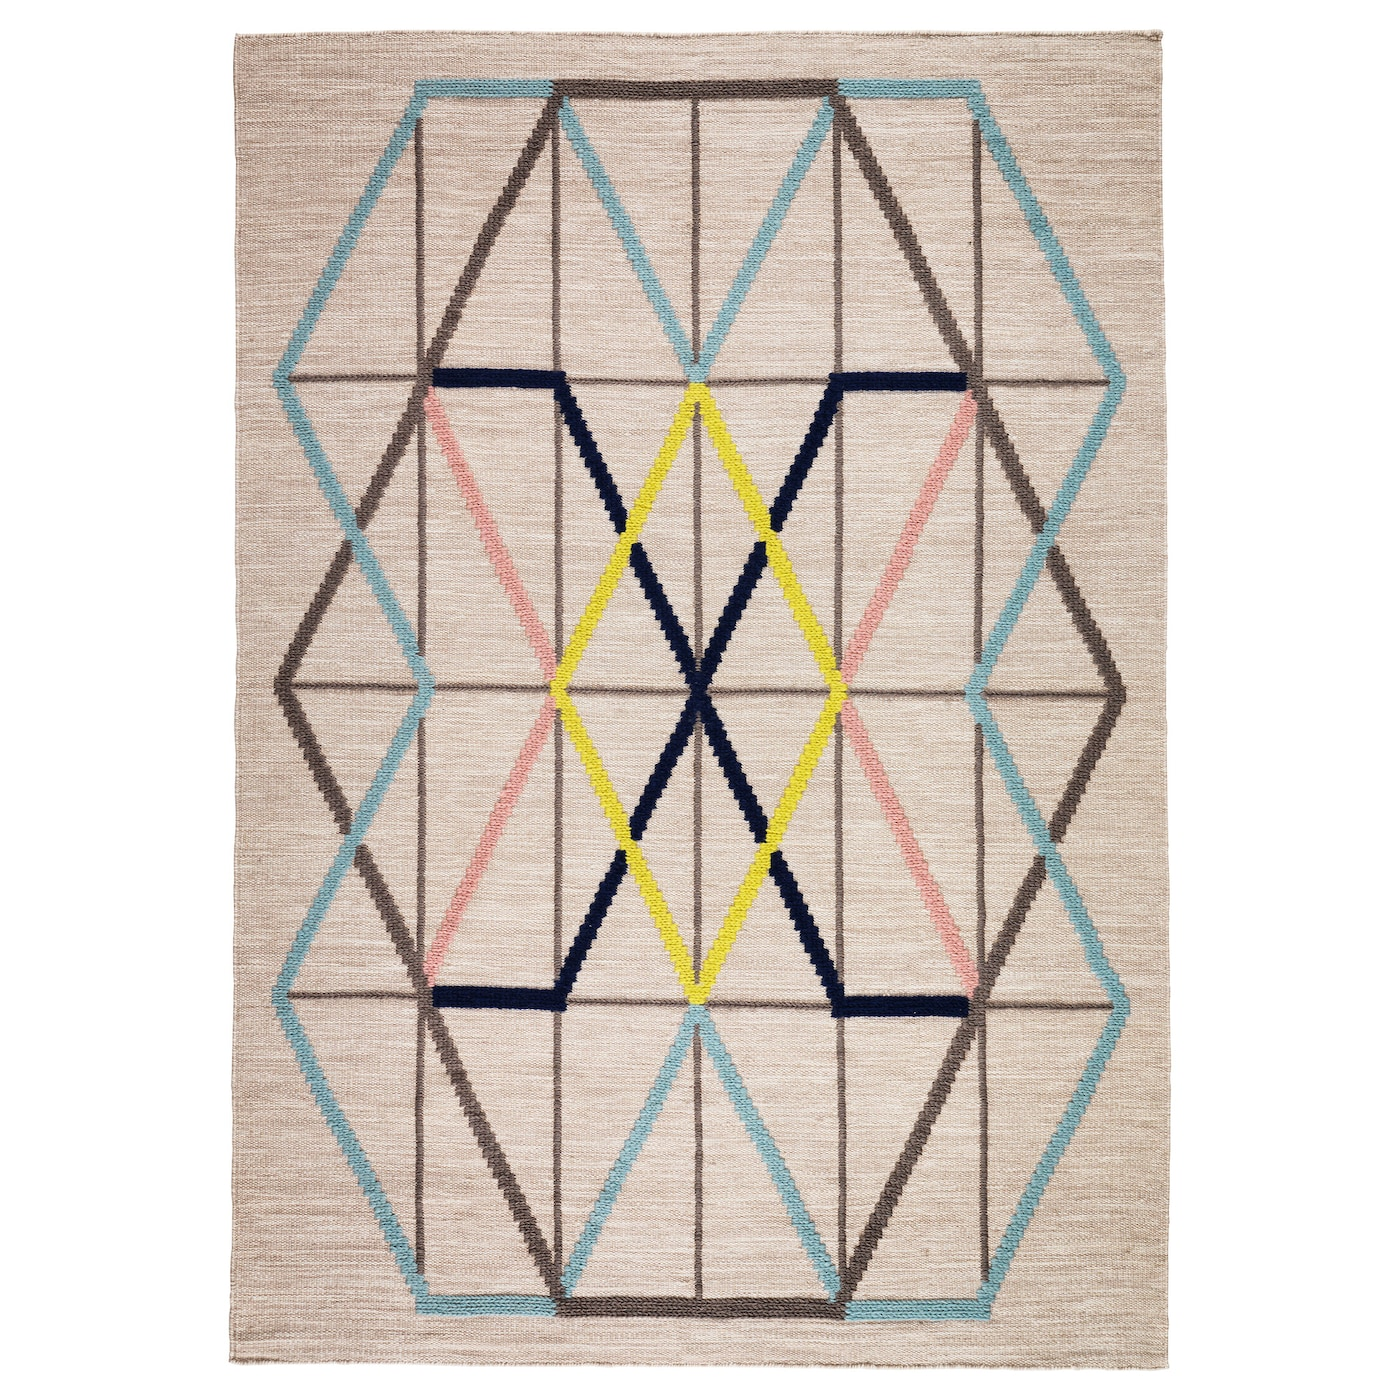 Ikea Ps 2016 Rug Flatwoven The Has An Embroidered Pattern That Adds Depth